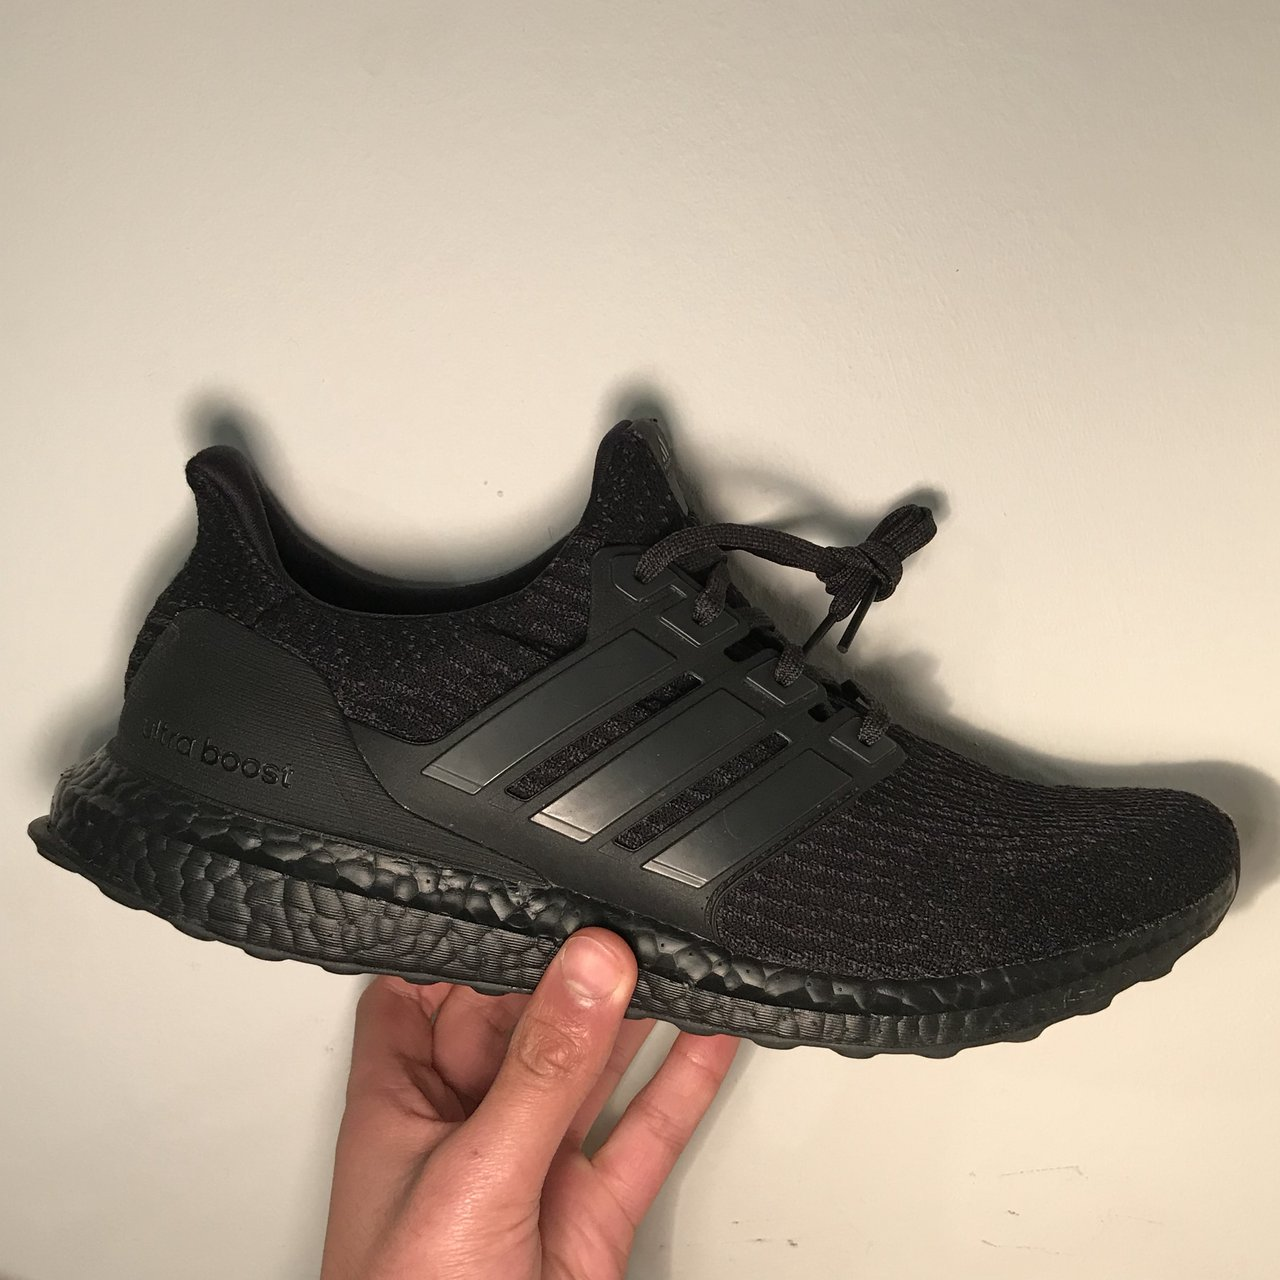 31af8e45d7b05 Adidas Ultra Boost 3.0 Triple Black (v2 2.0) Size 10 UK 9 10 - Depop